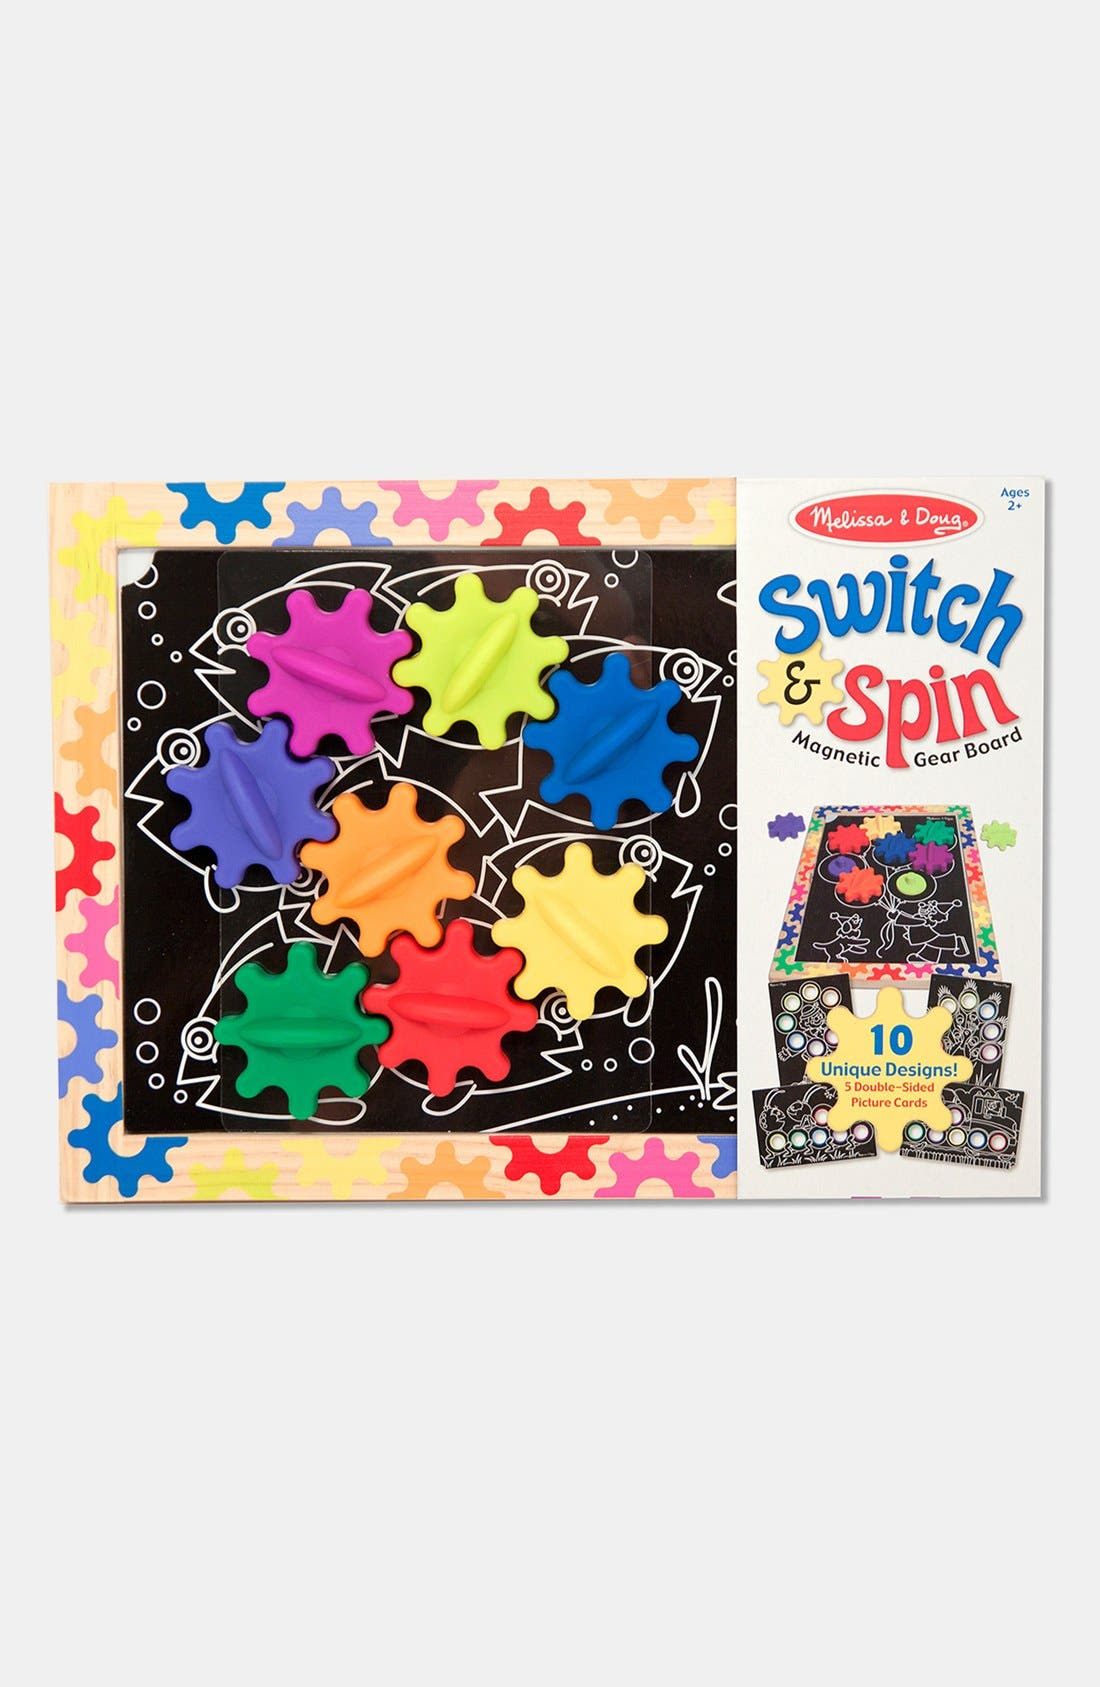 Main Image - Melissa & Doug 'Switch & Spin' Magnetic Gear Board